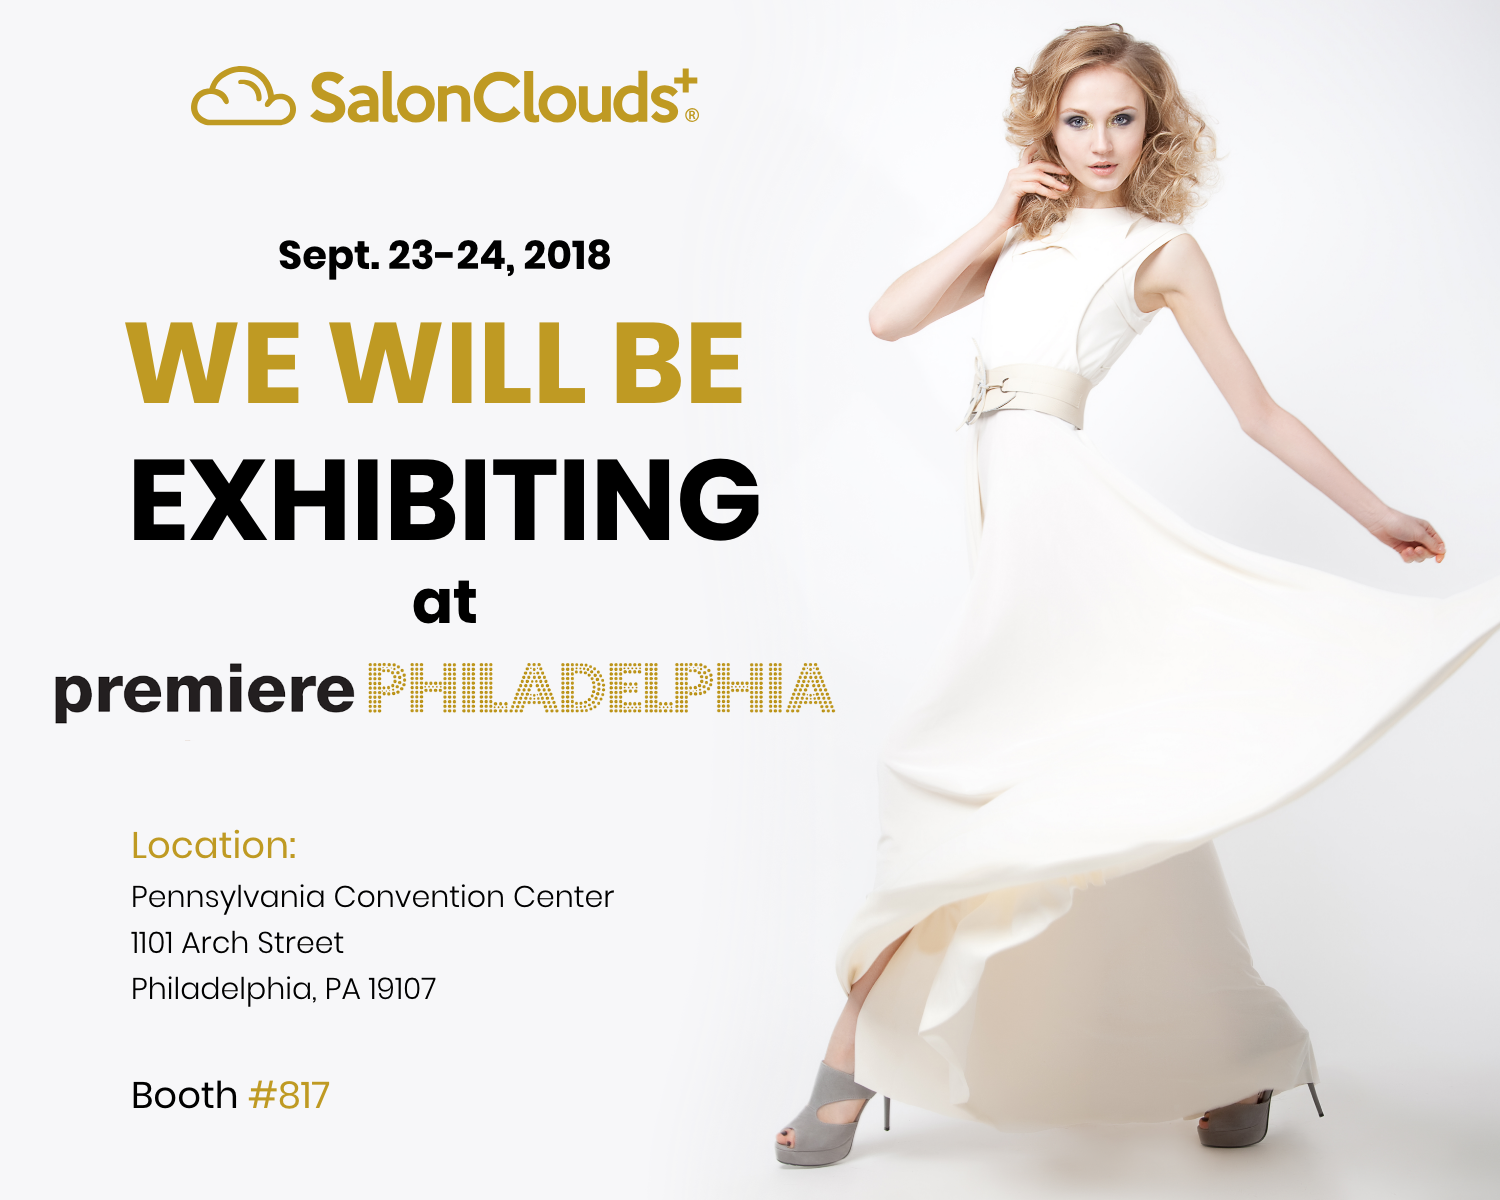 Join SalonCloudsPlus at Premiere Philadelphia